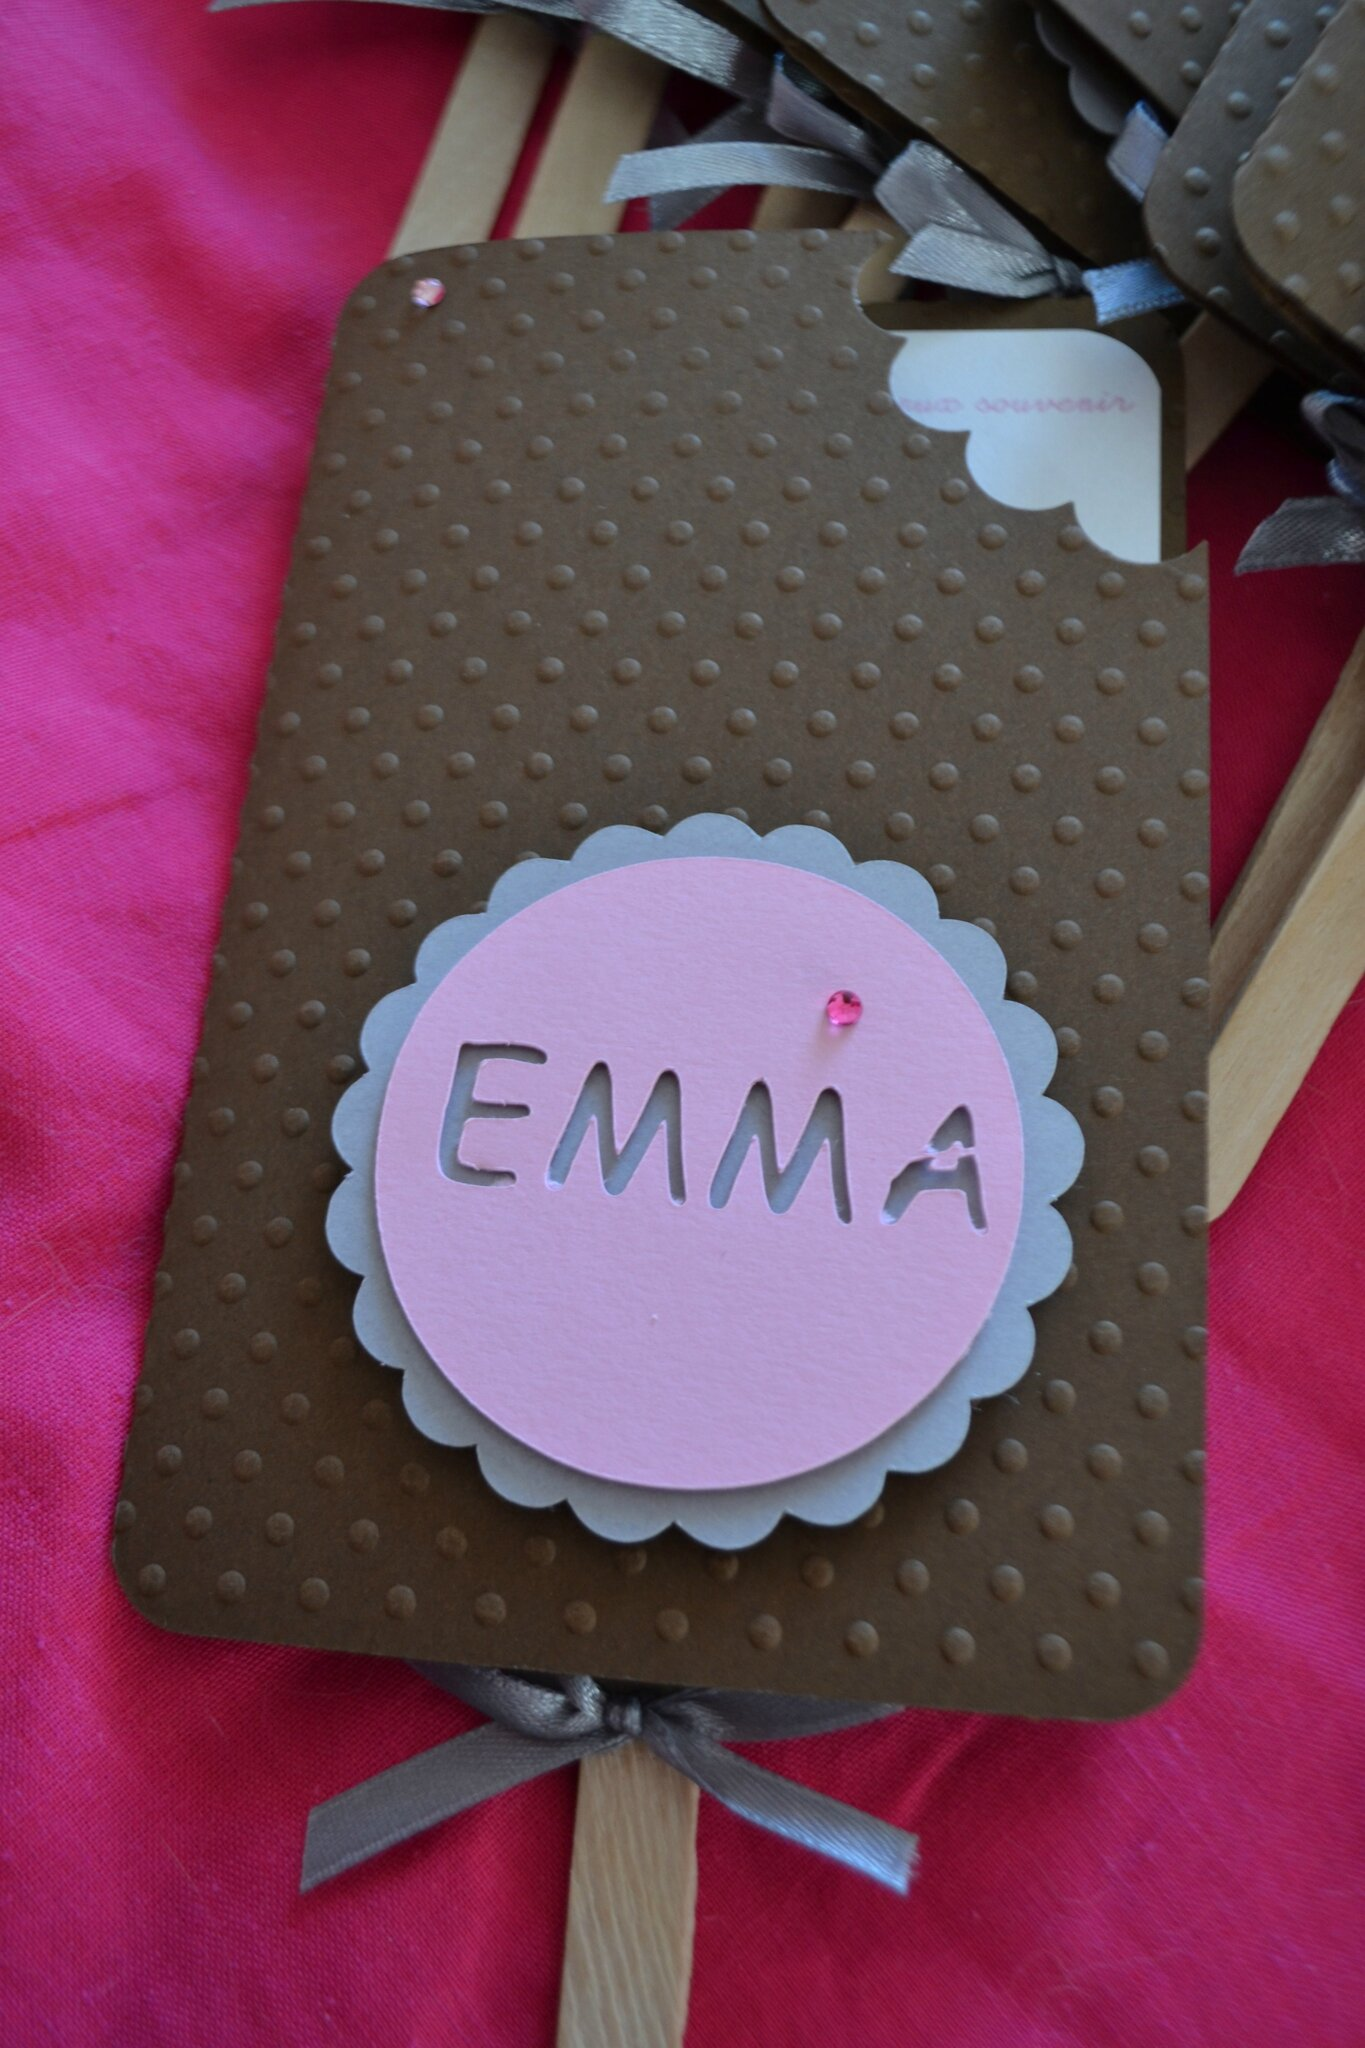 faire part bapt me et anniversaire emma th me chocolat et gourmandise orely scrap. Black Bedroom Furniture Sets. Home Design Ideas